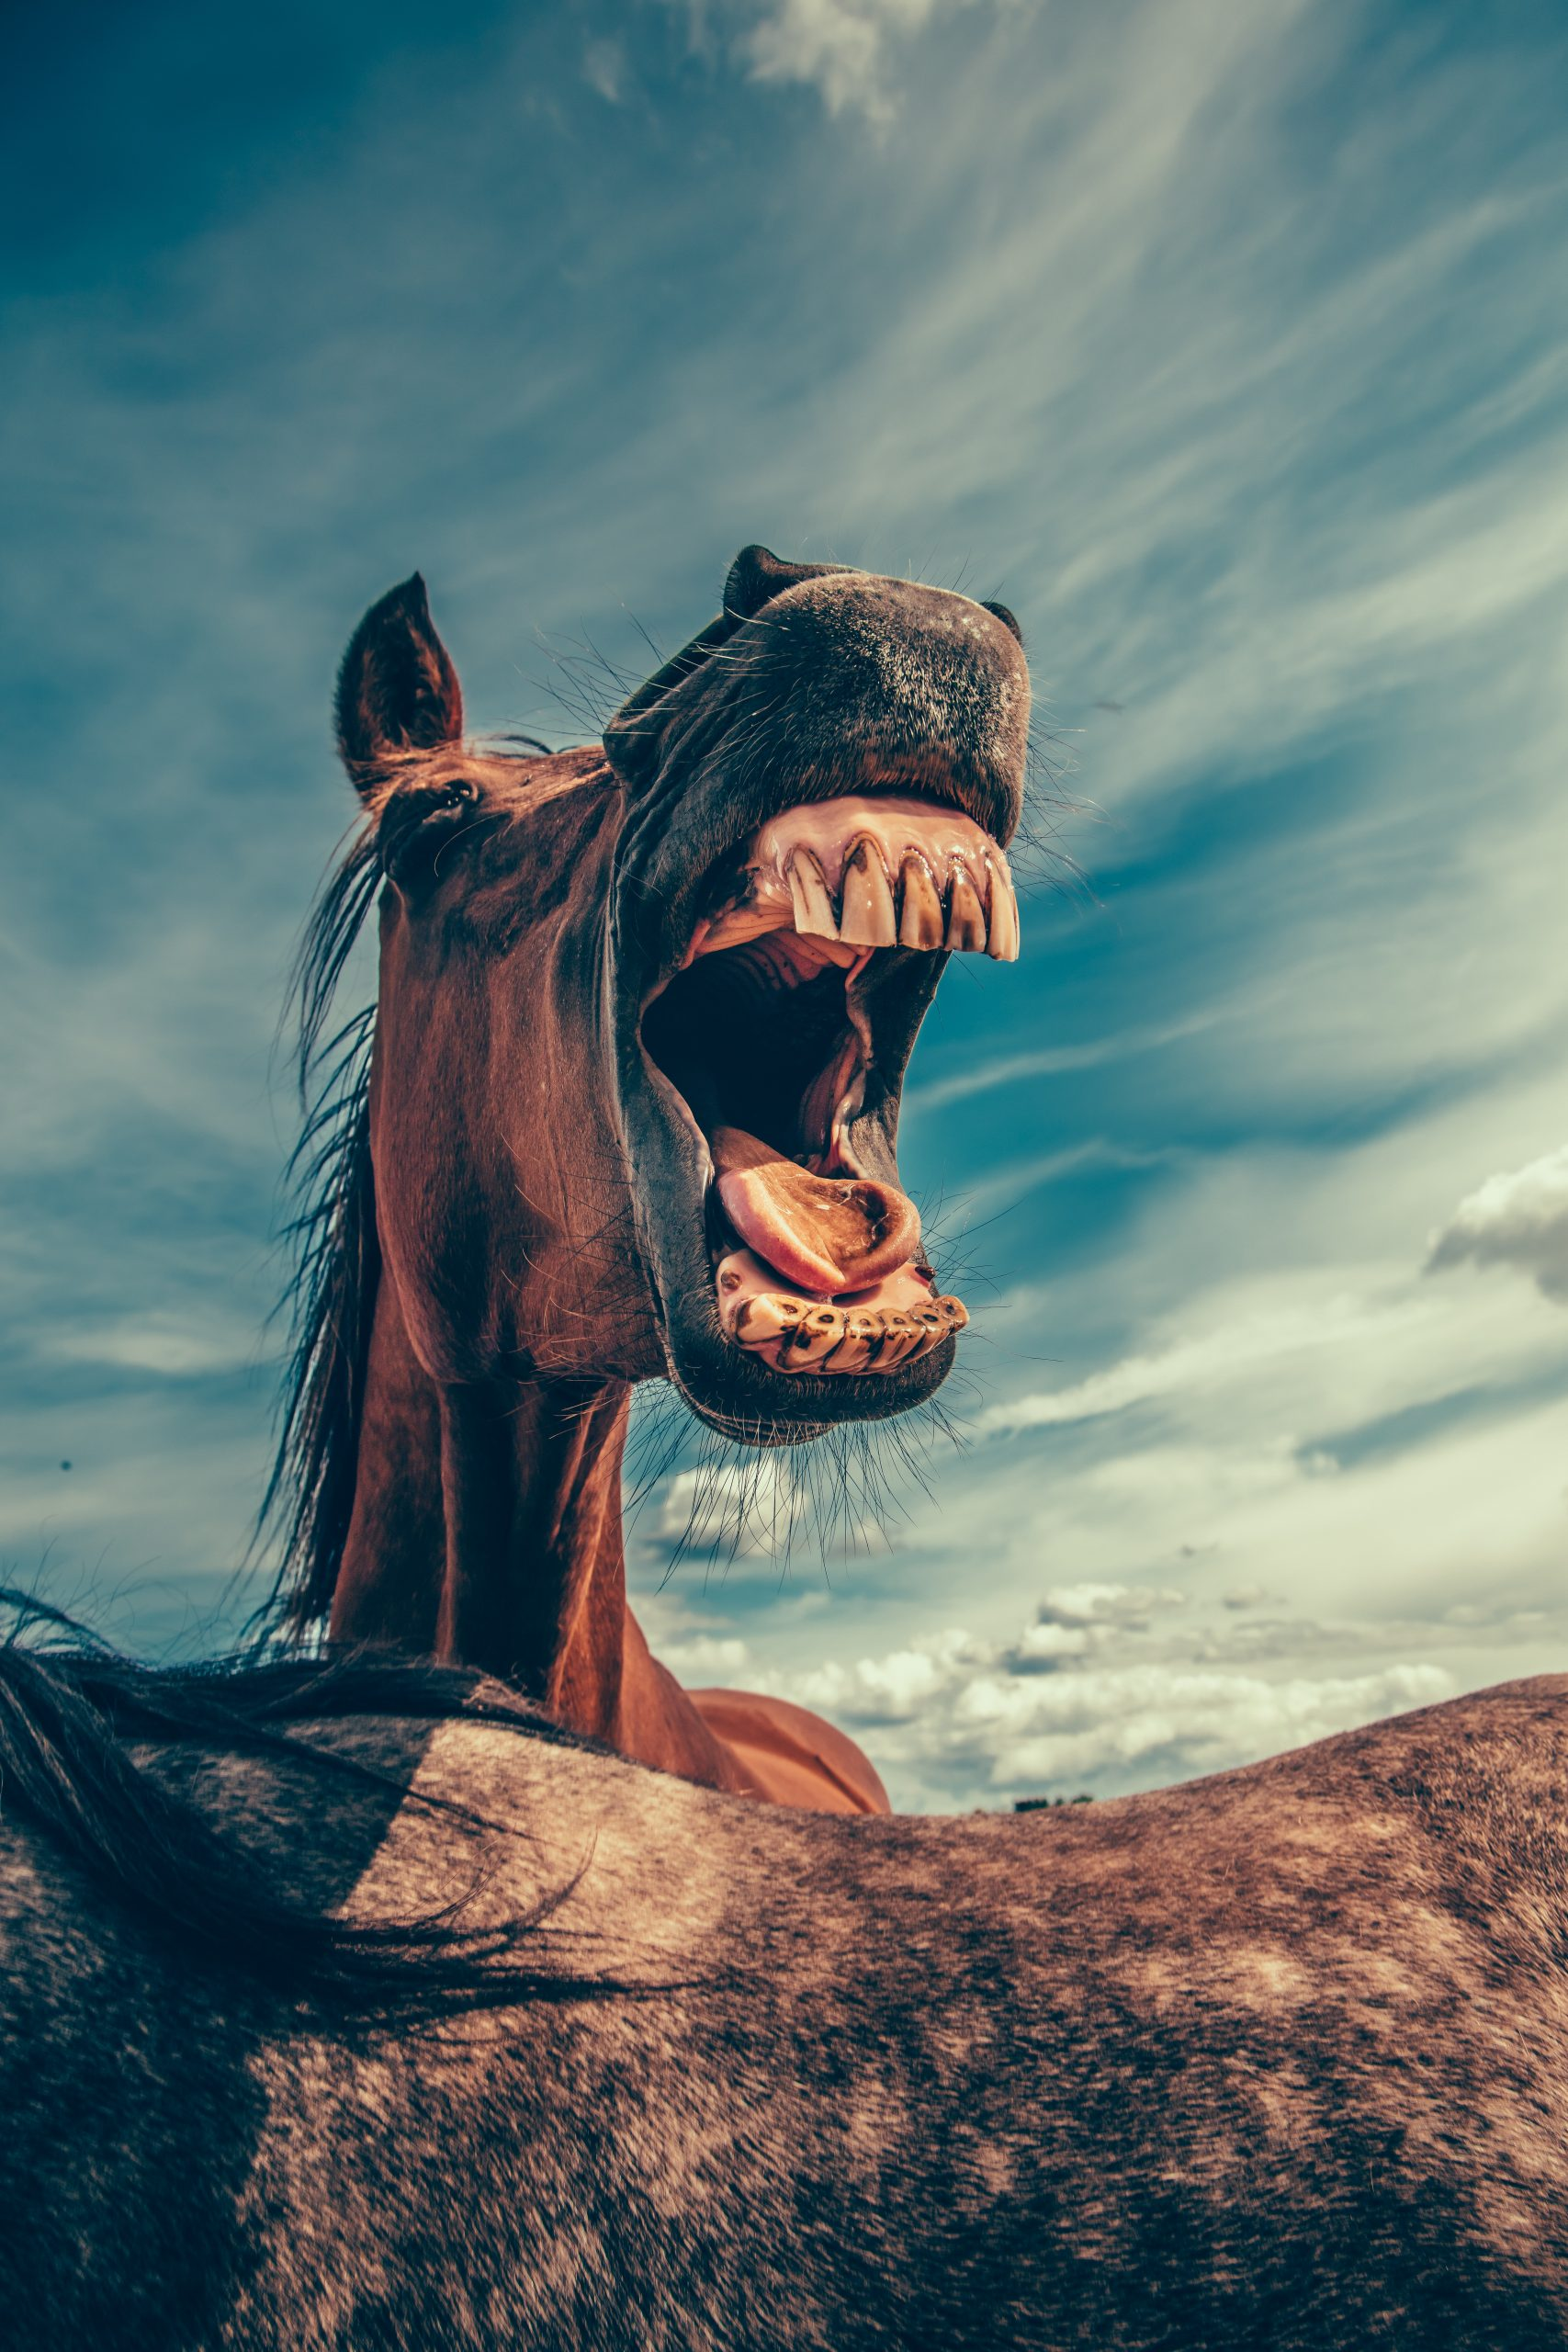 picture of a horse that looks like it's laughing. Hilarious dad jokes on www.marianamcdougall.com Photo by Mikael Kristenson on Unsplash